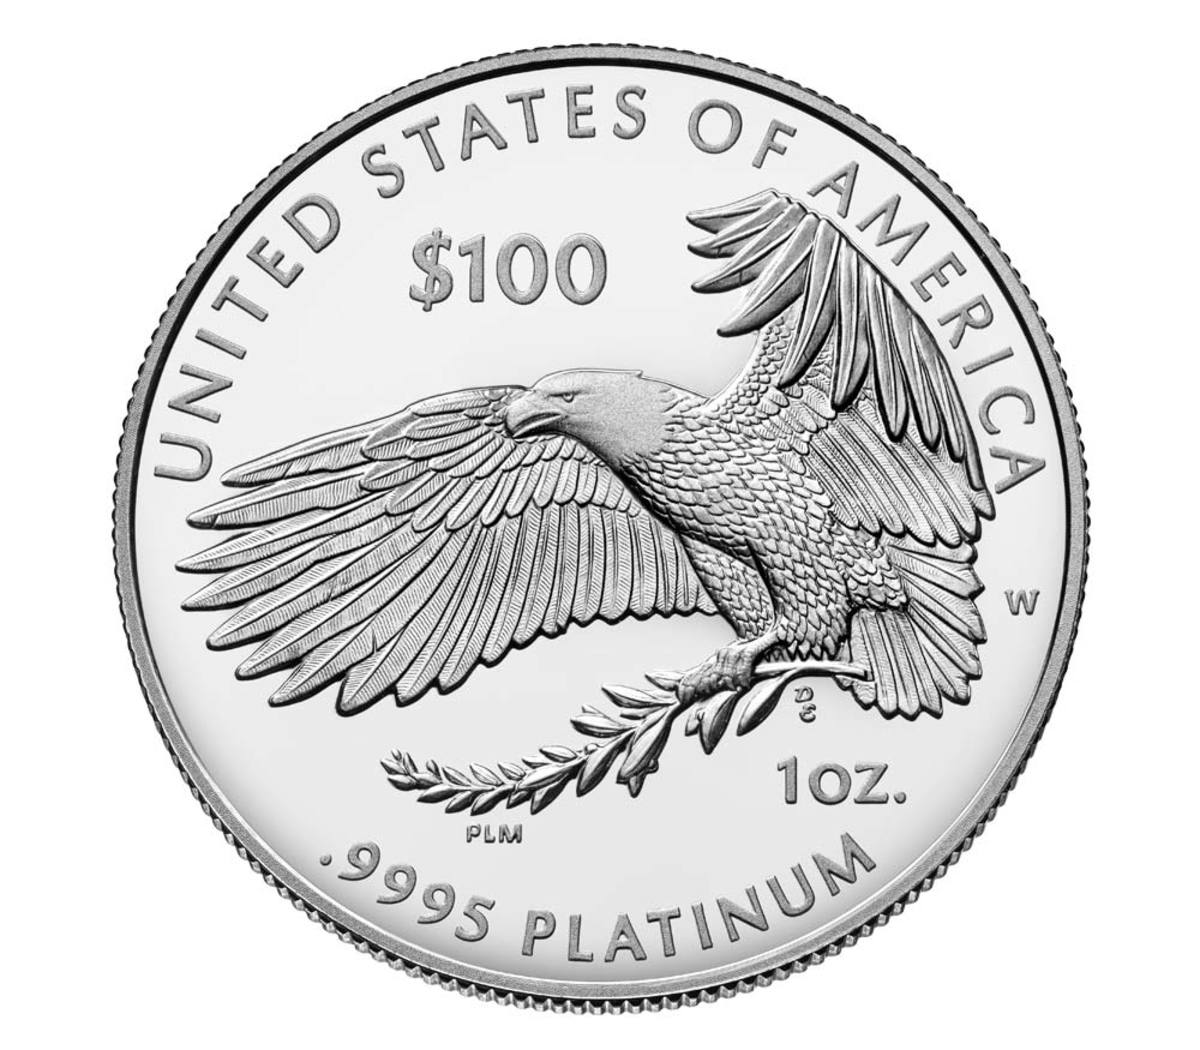 """Shown is the """"Preamble to the Declaration of Independence"""" 2018 Platinum Proof Coin. (Image courtesy of U.S. Mint.)"""